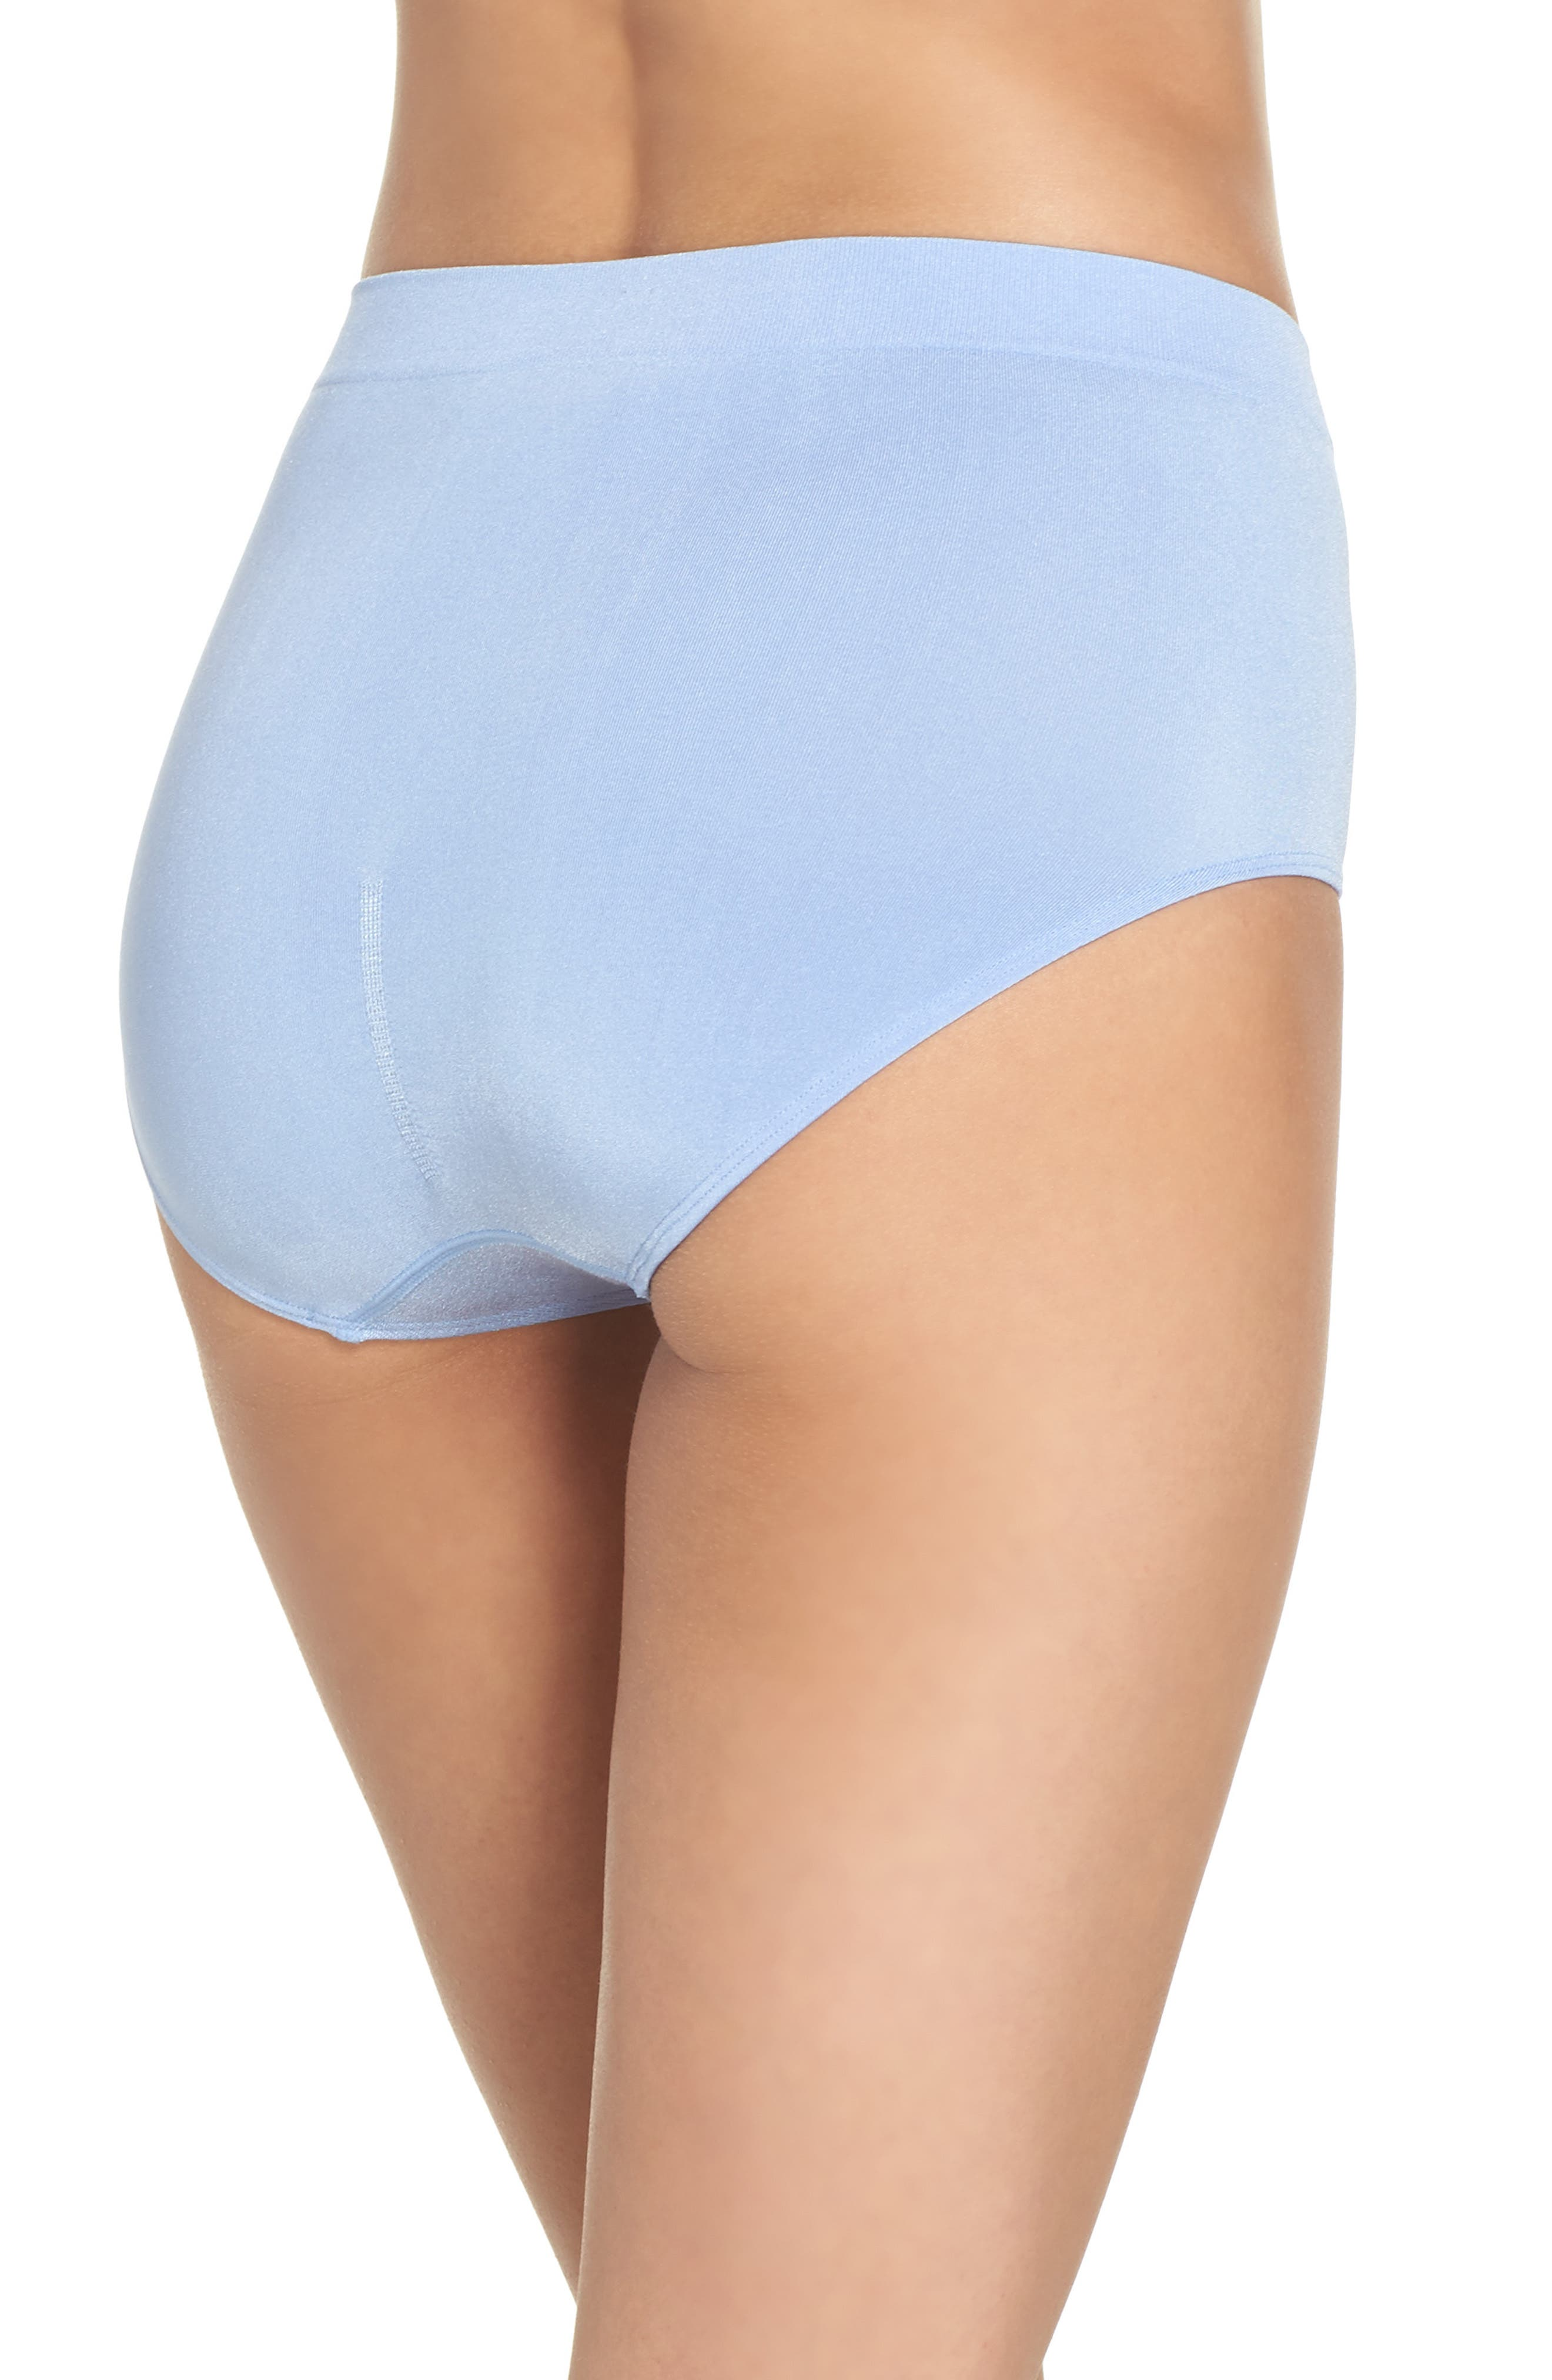 B Smooth Briefs,                             Alternate thumbnail 89, color,